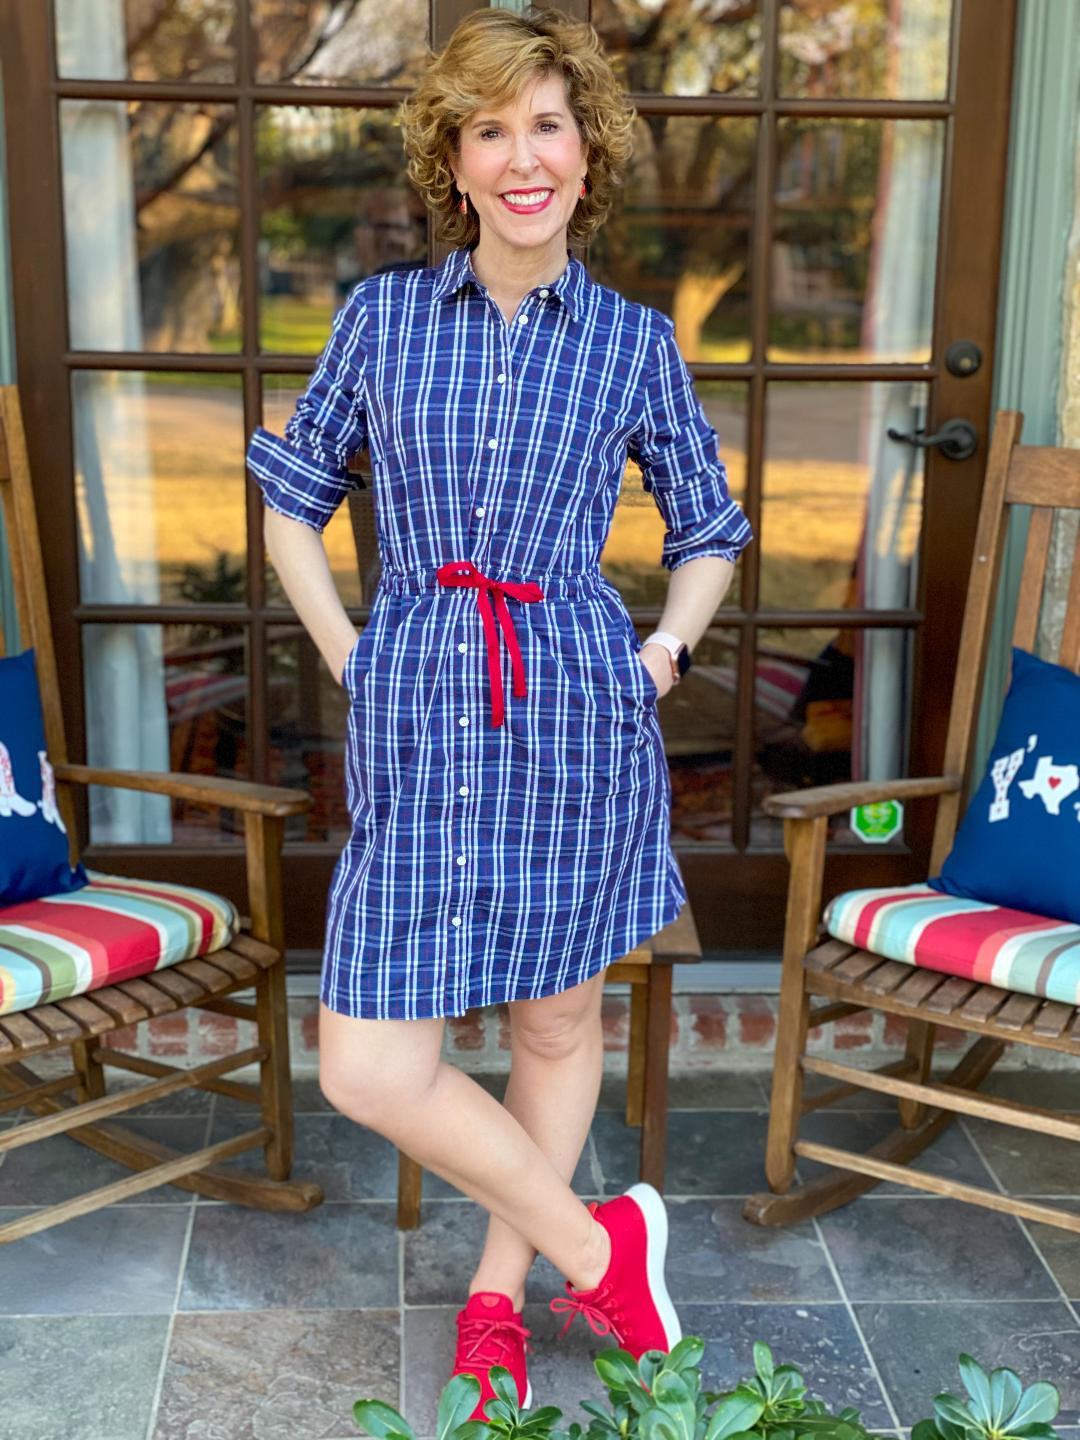 woman in blue dress with red shoes standing on her front porch